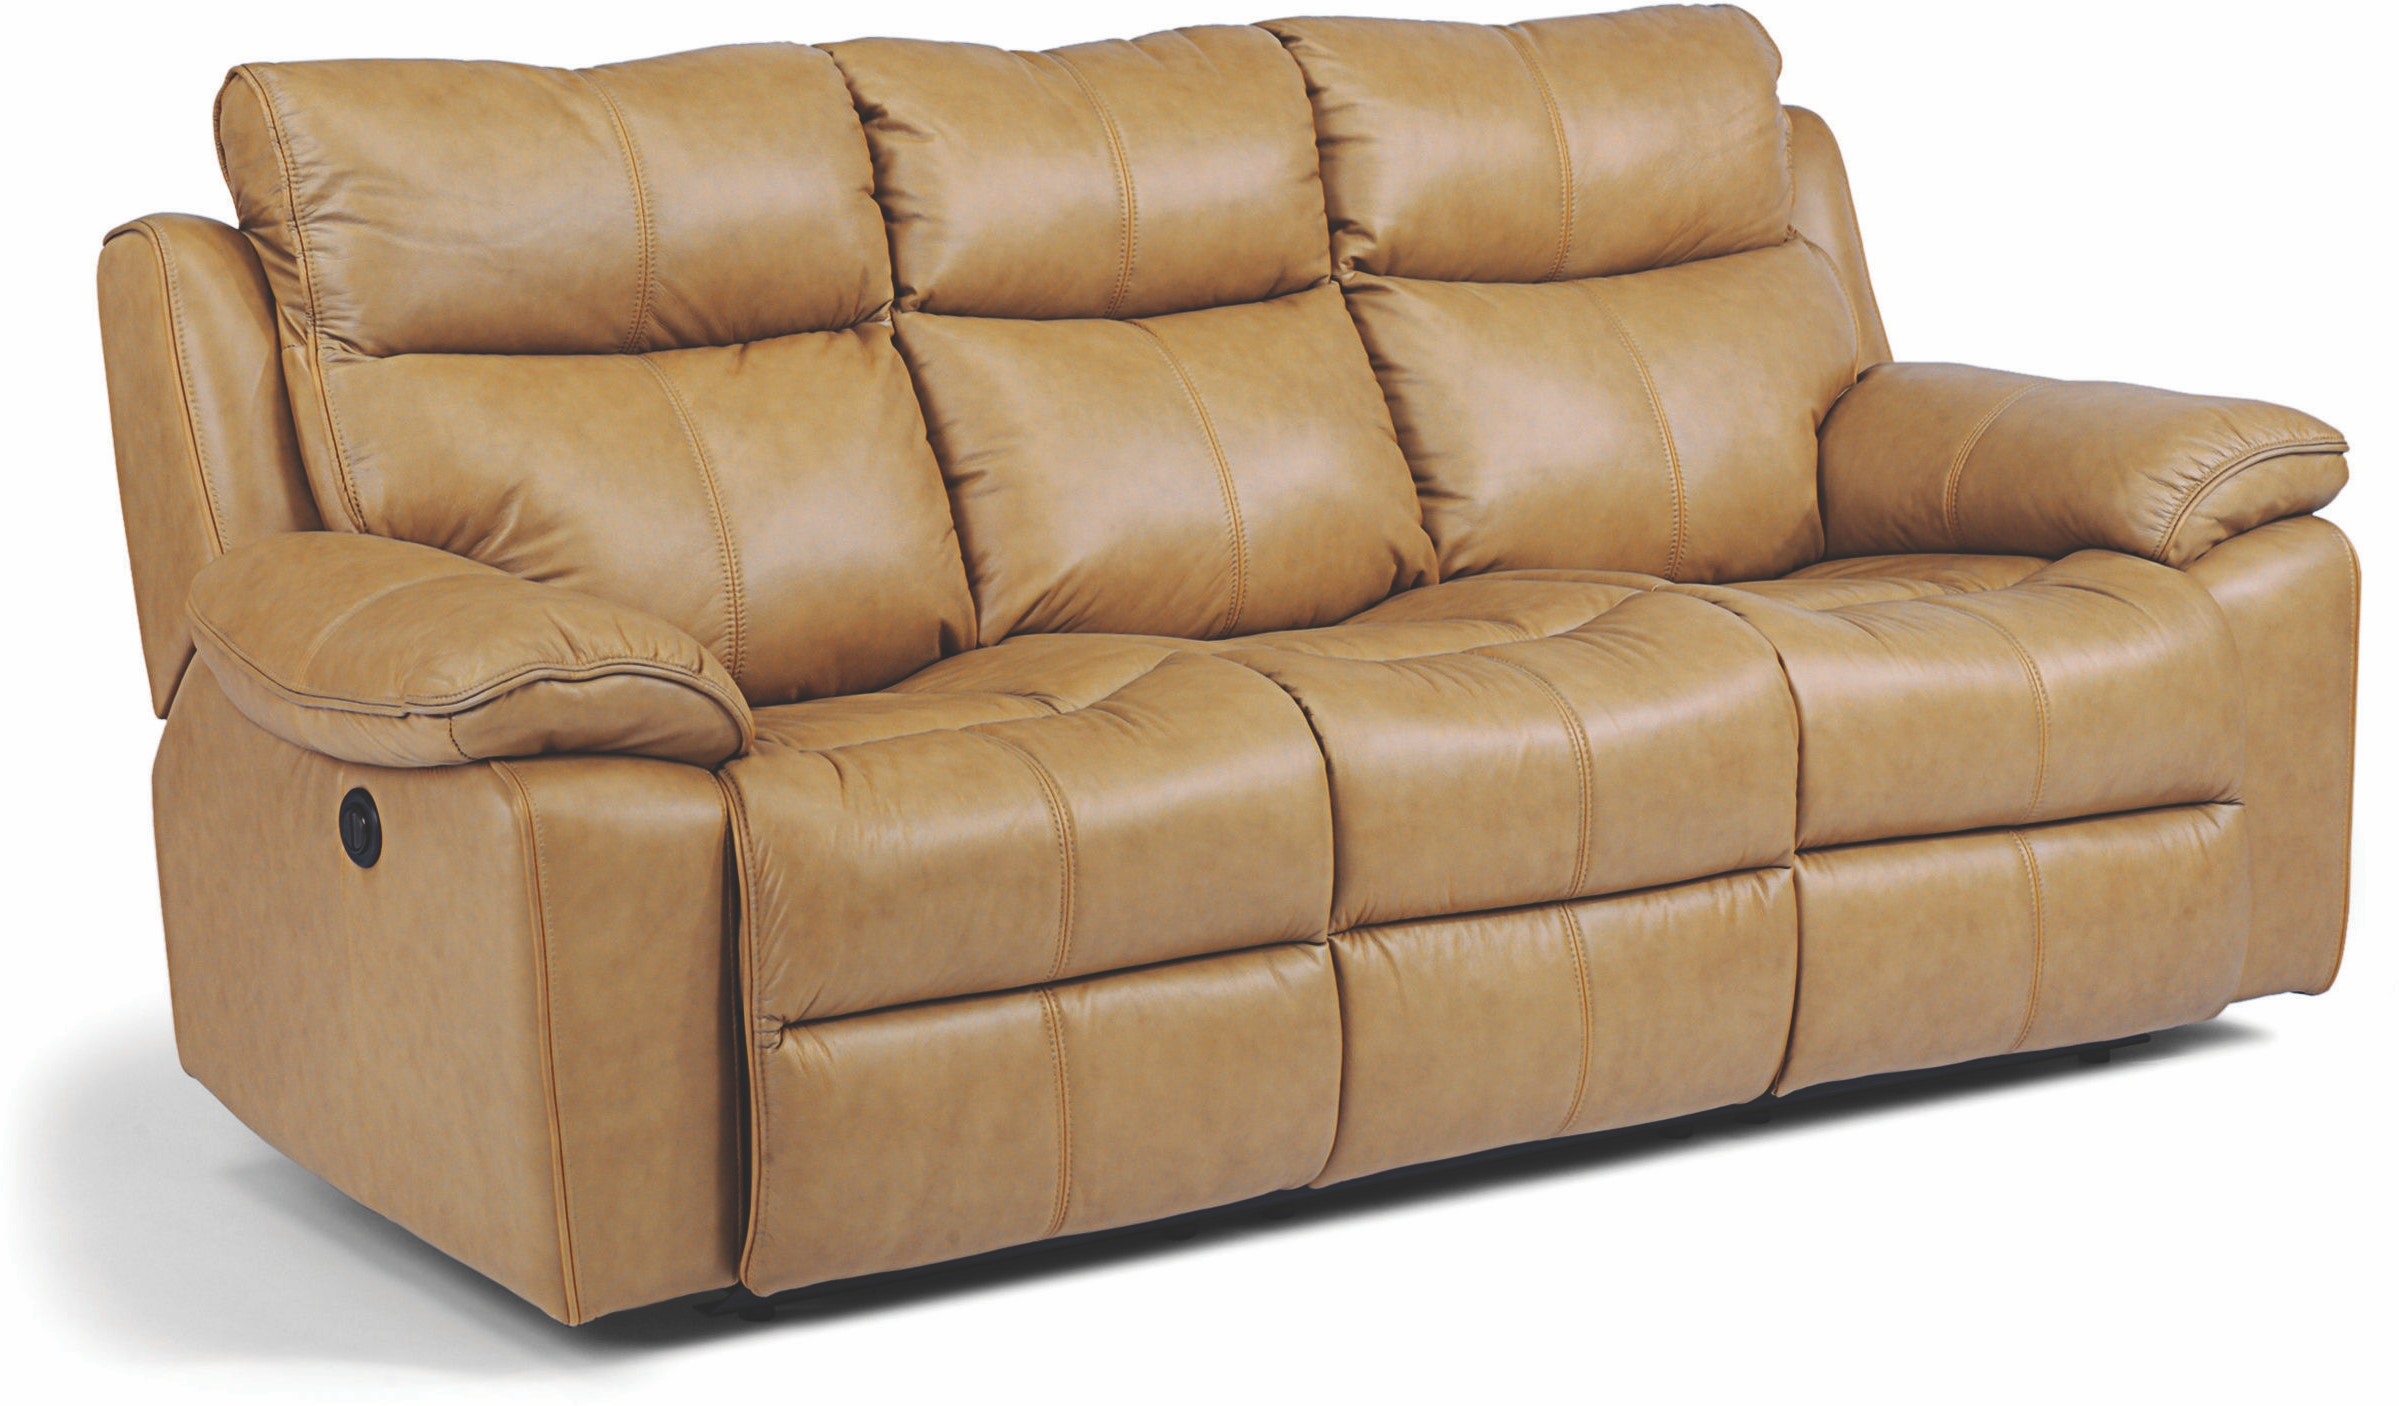 Flexsteel Living Room Julio Power Reclining Sofa